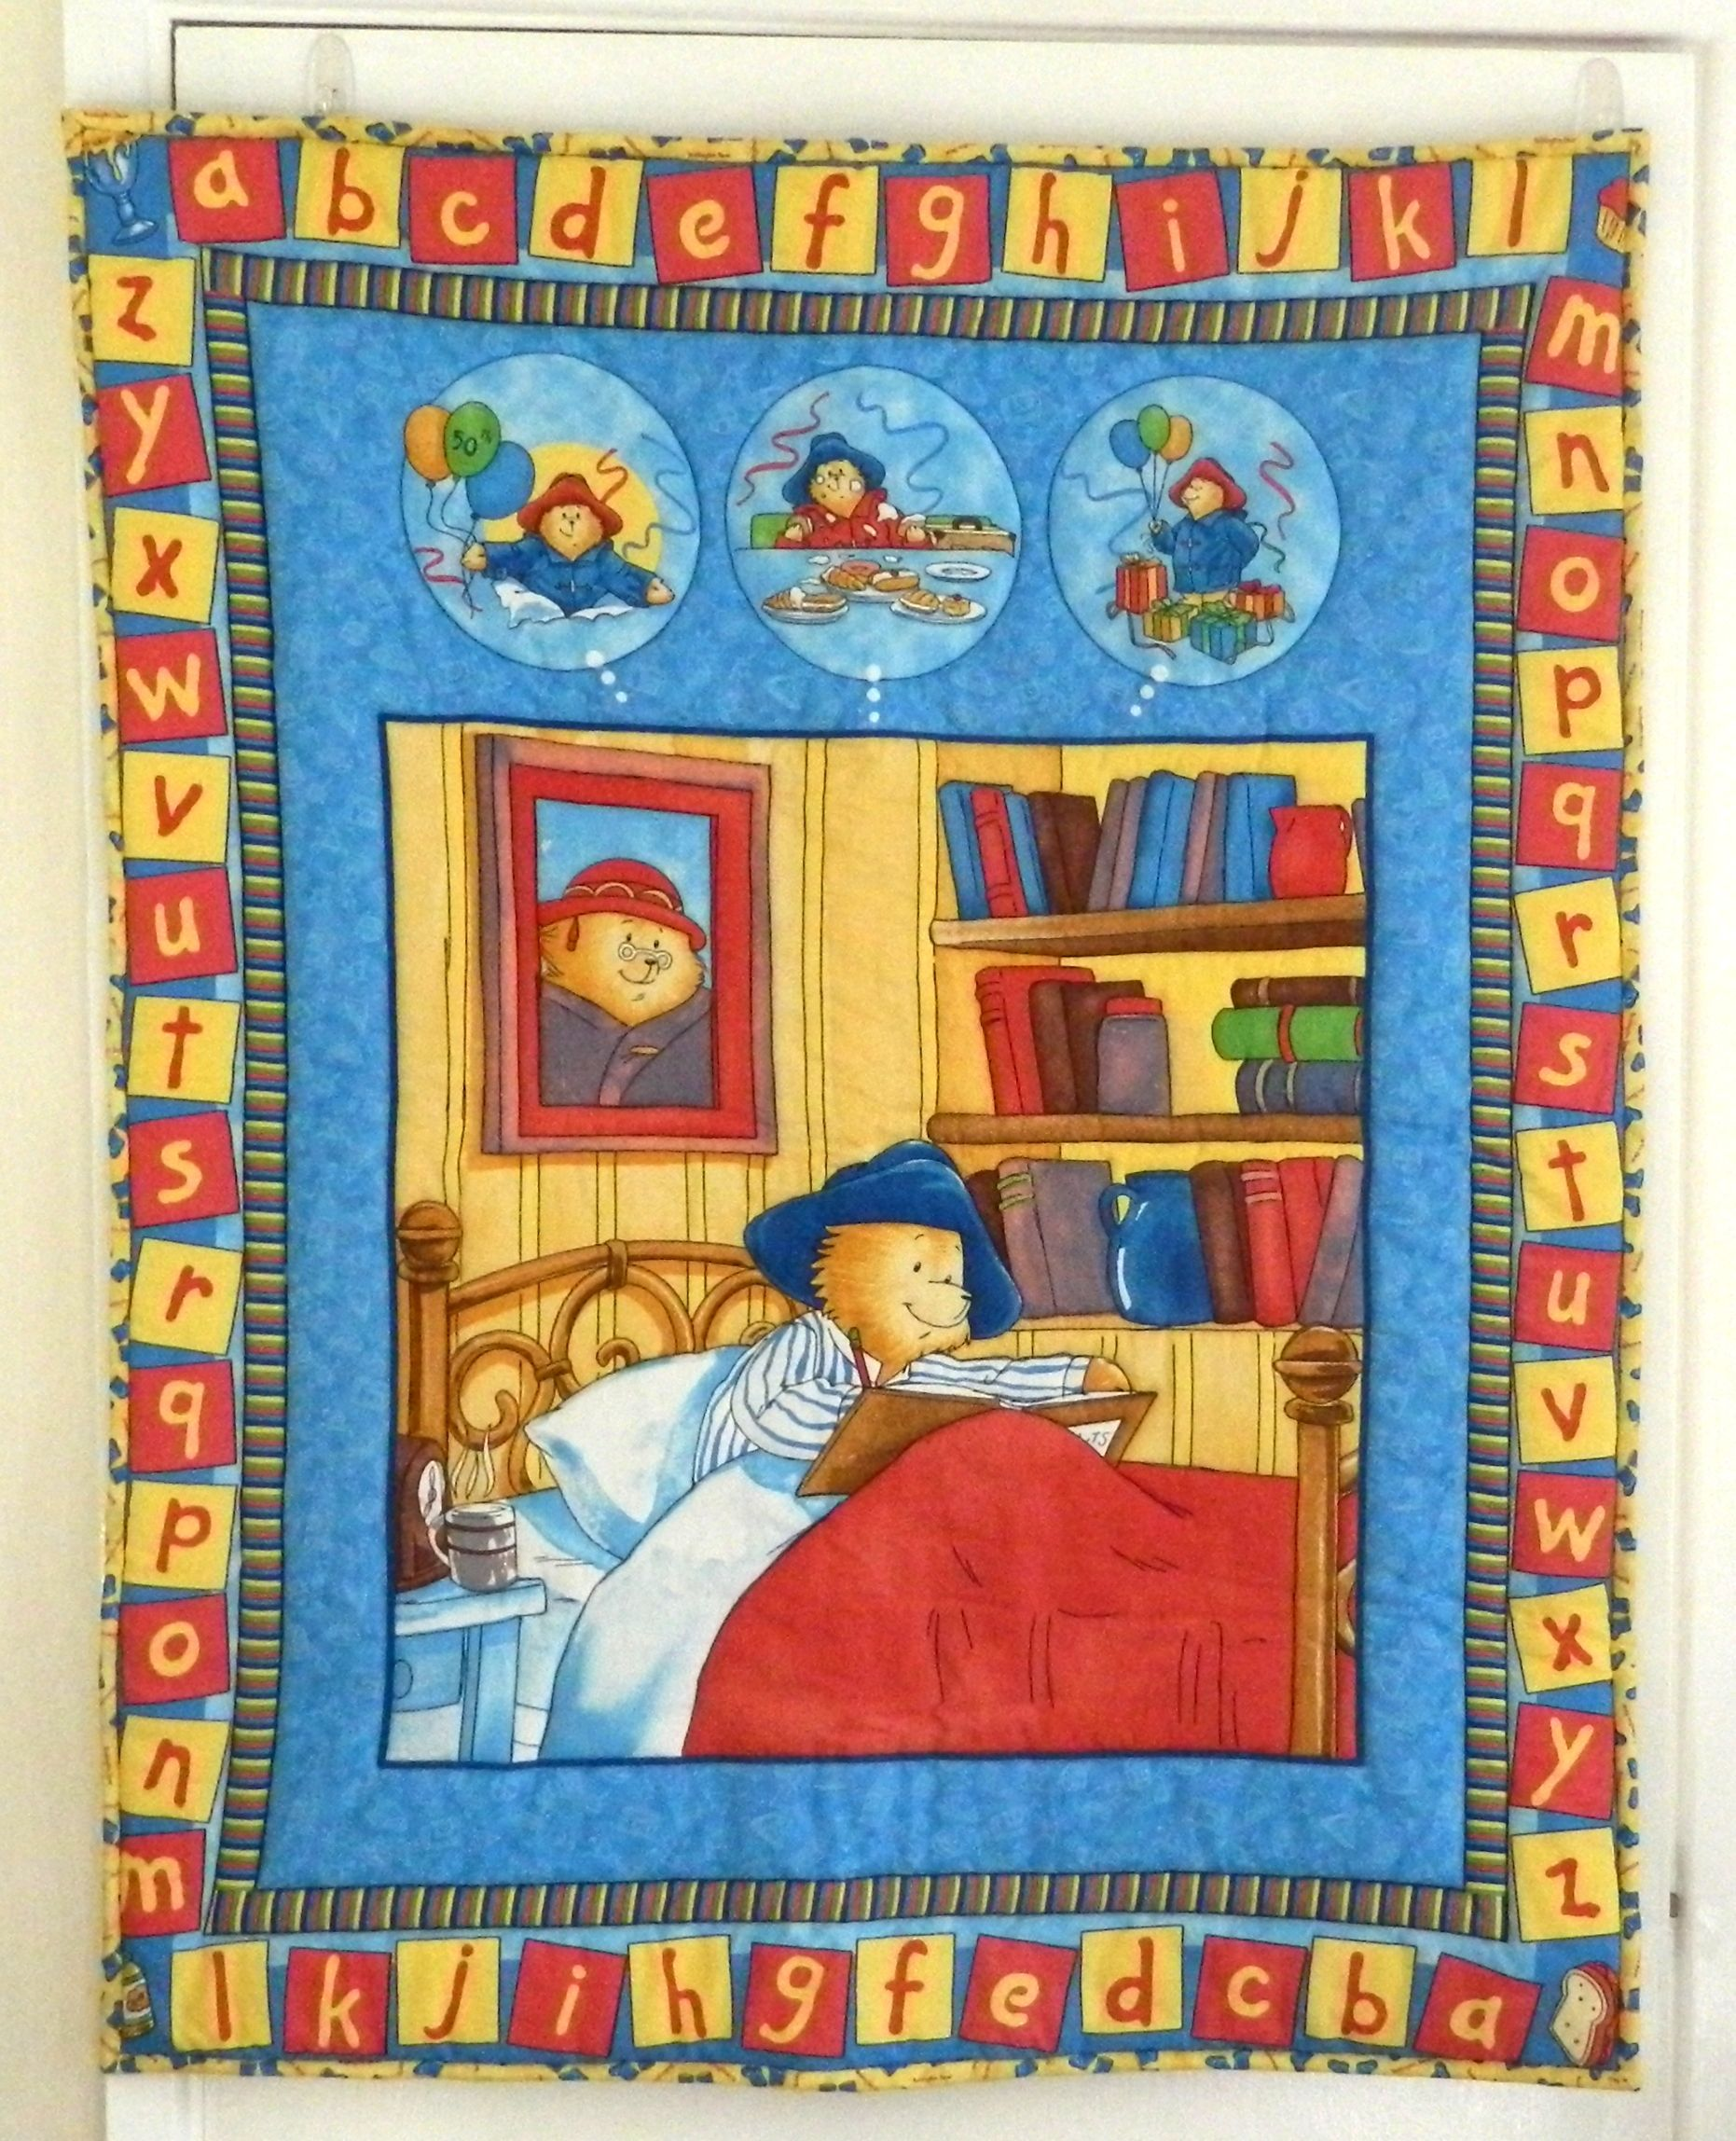 Paddington Bear Quilt. Here he is sitting up in bed surrounded by ... : paddington bear quilt - Adamdwight.com